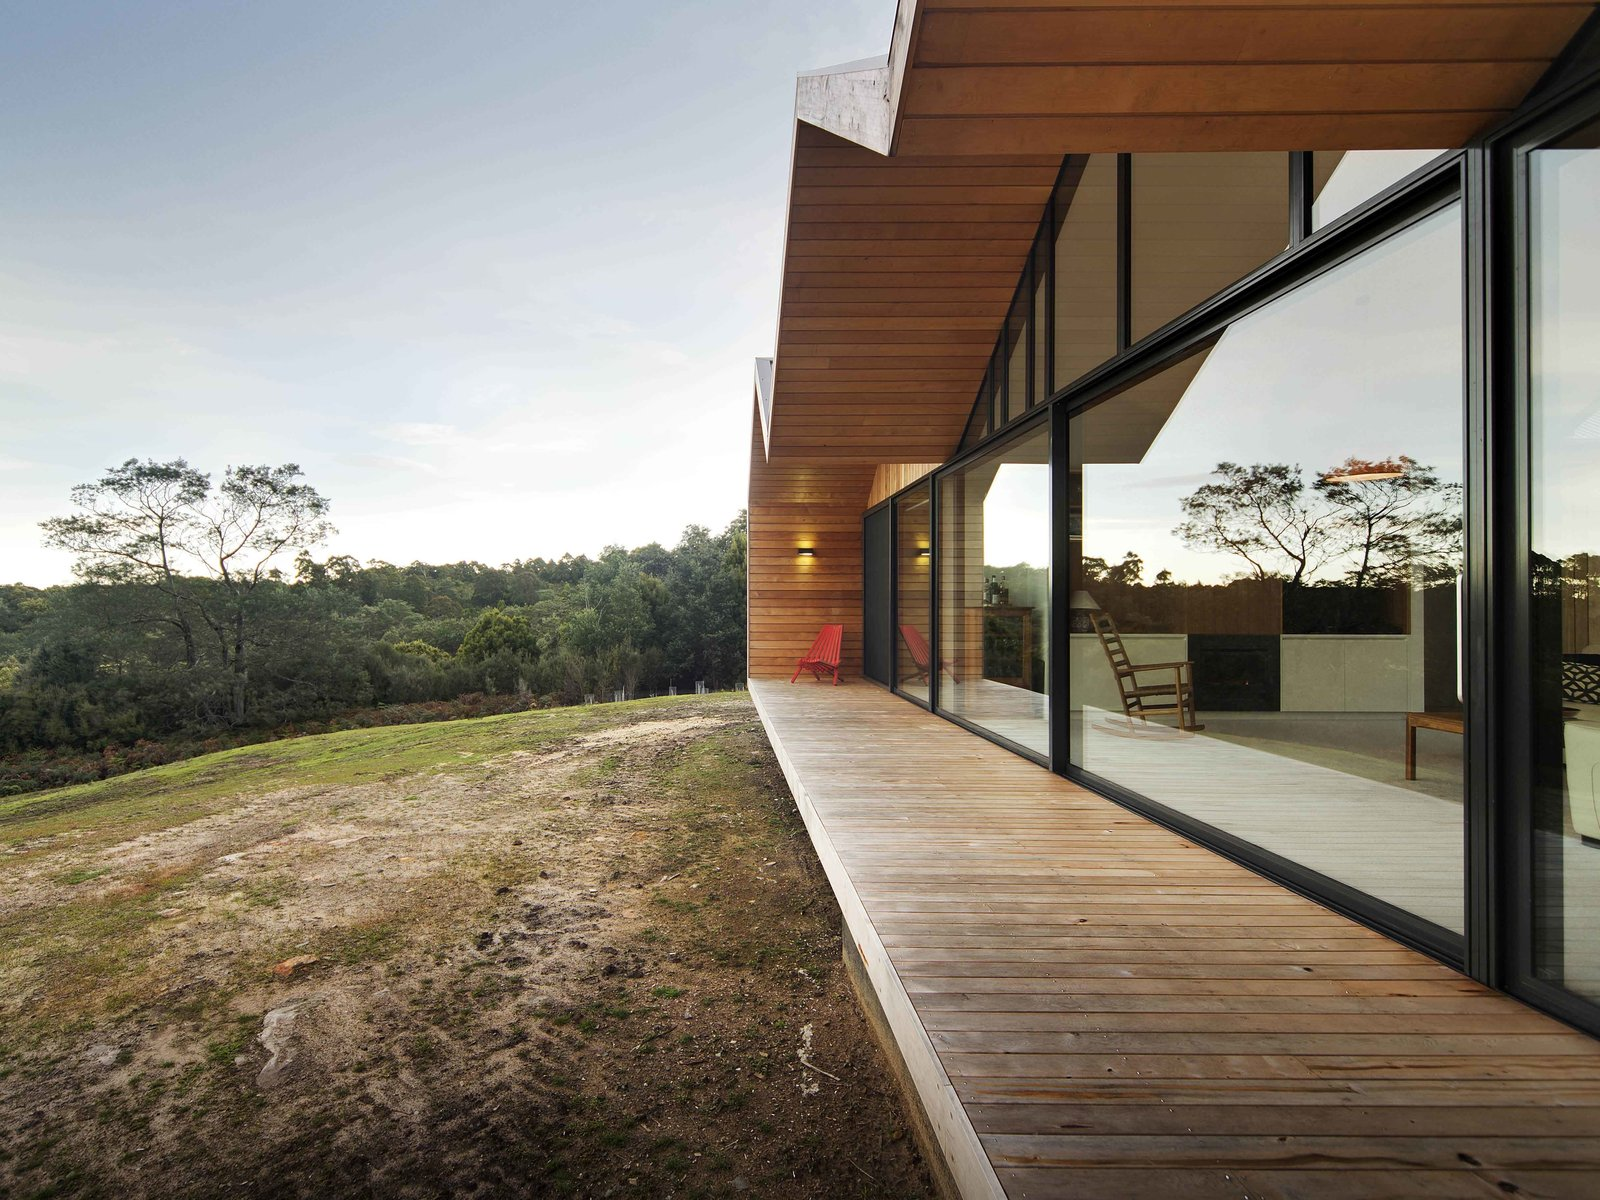 "House, Outdoor, Wood, Large, Wood, and Slope Constructing a largely timber house in a bush fire-prone landscape wasn't easy. ""We had to negotiate with the council and building surveyor,"" Crump explains. To solve the challenge, the architect designed an outer, protective skin for the home that's clad with metal; it pushes beyond the building envelope to provide covering for outdoor living spaces. The inset walls are lined with local shiplap Celery Top Pine.  Best Outdoor House Wood Photos from Lookout House"